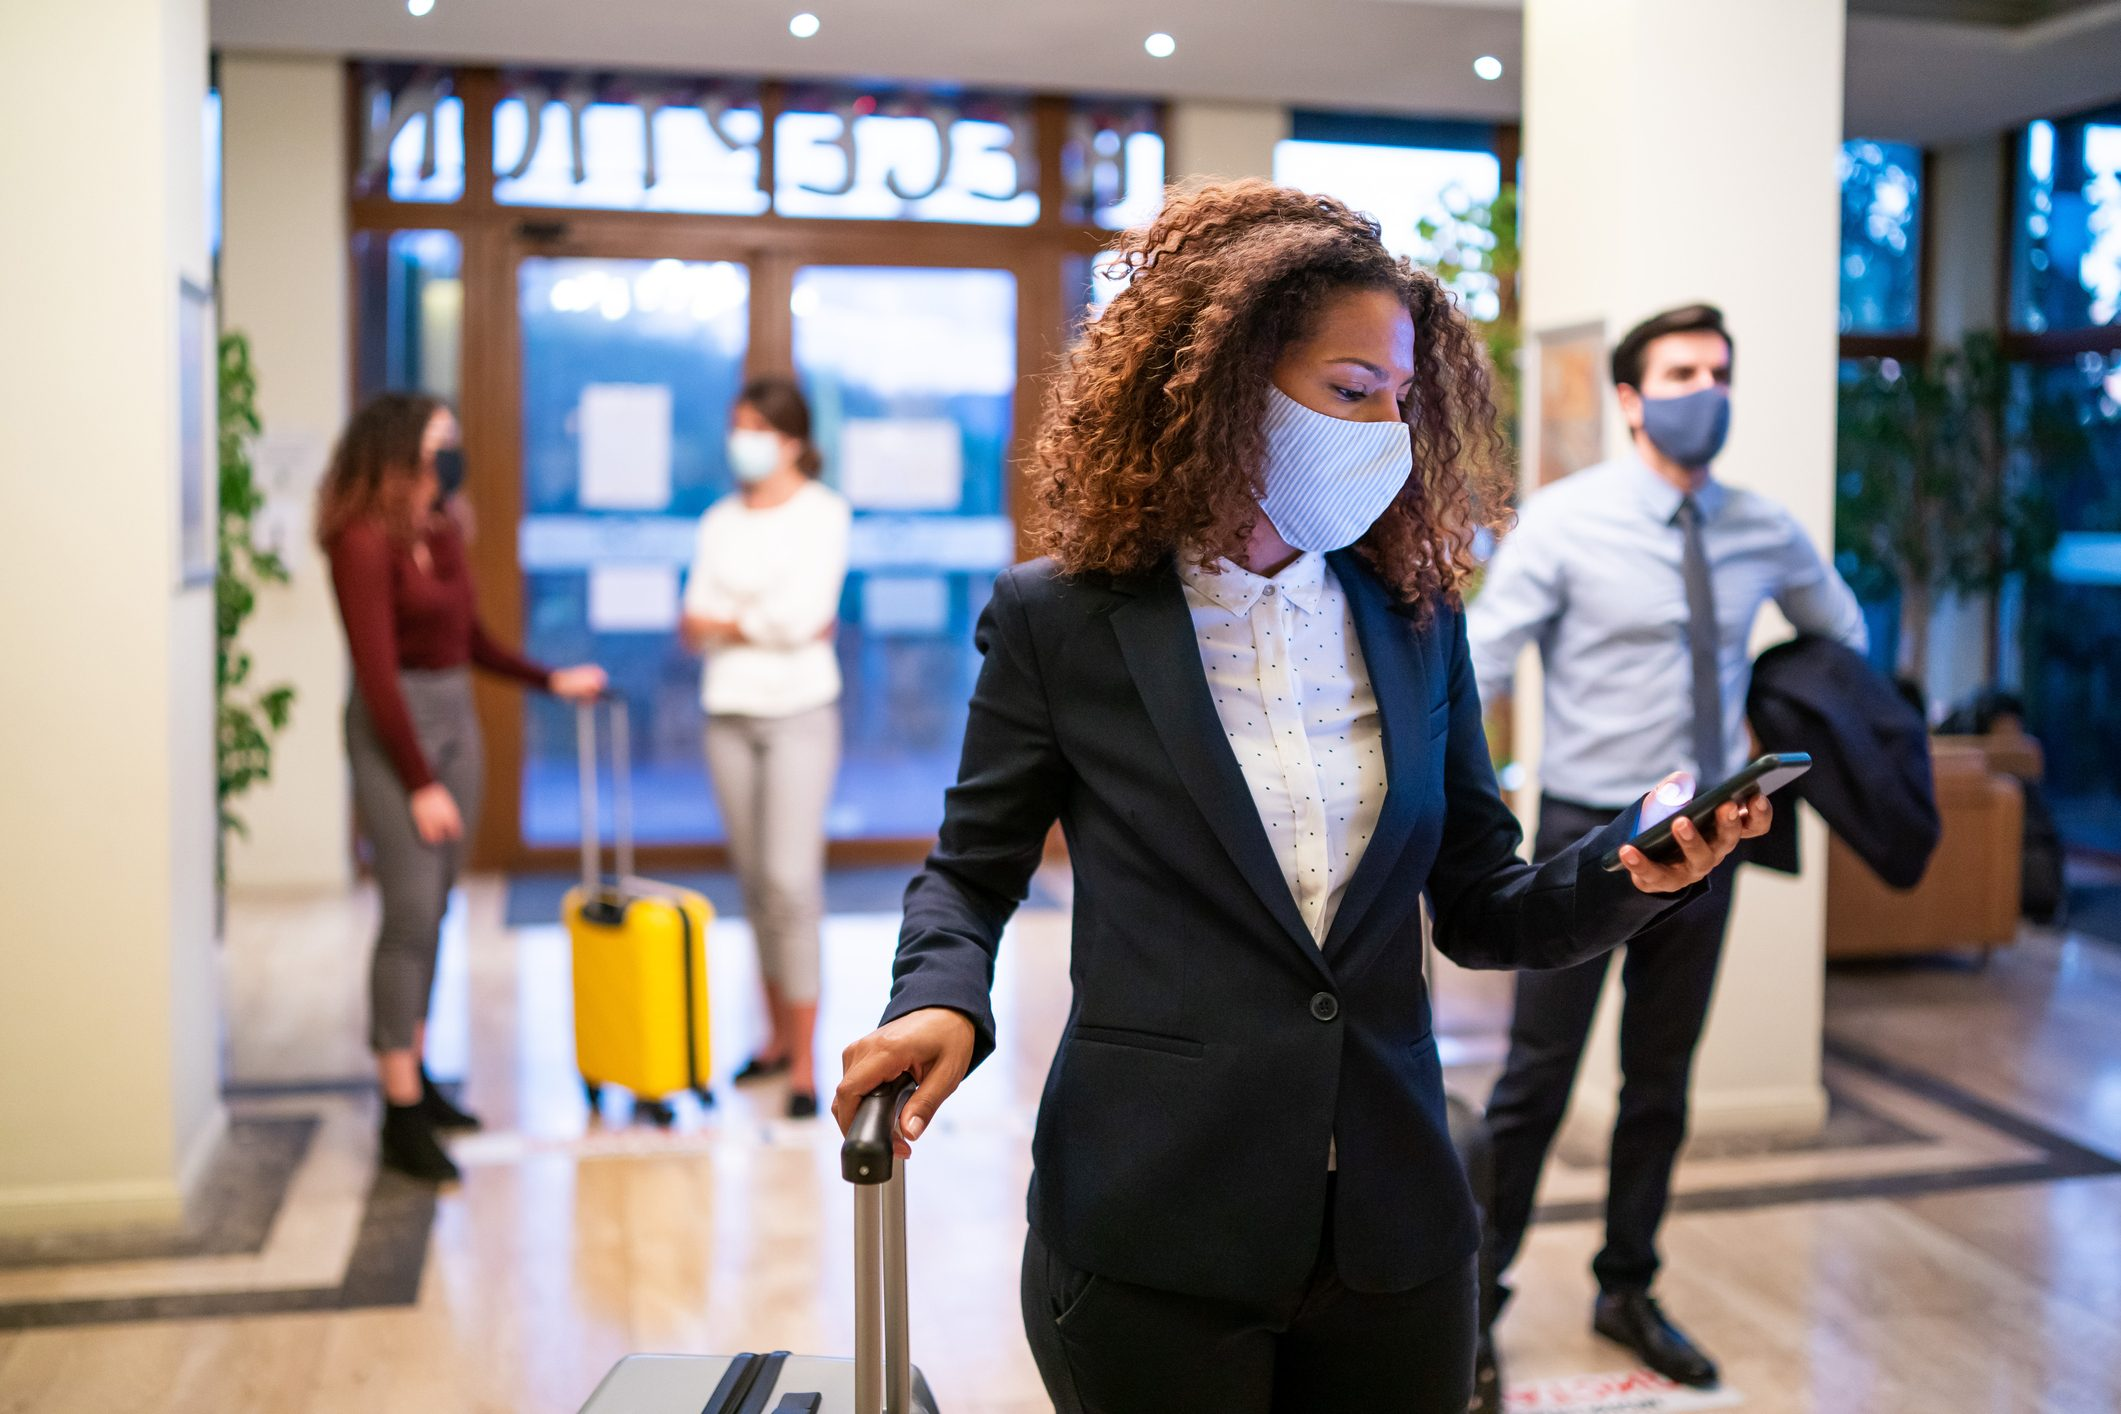 Hotel guests wearing face masks in the lobby; one woman is checking in on her smartphone